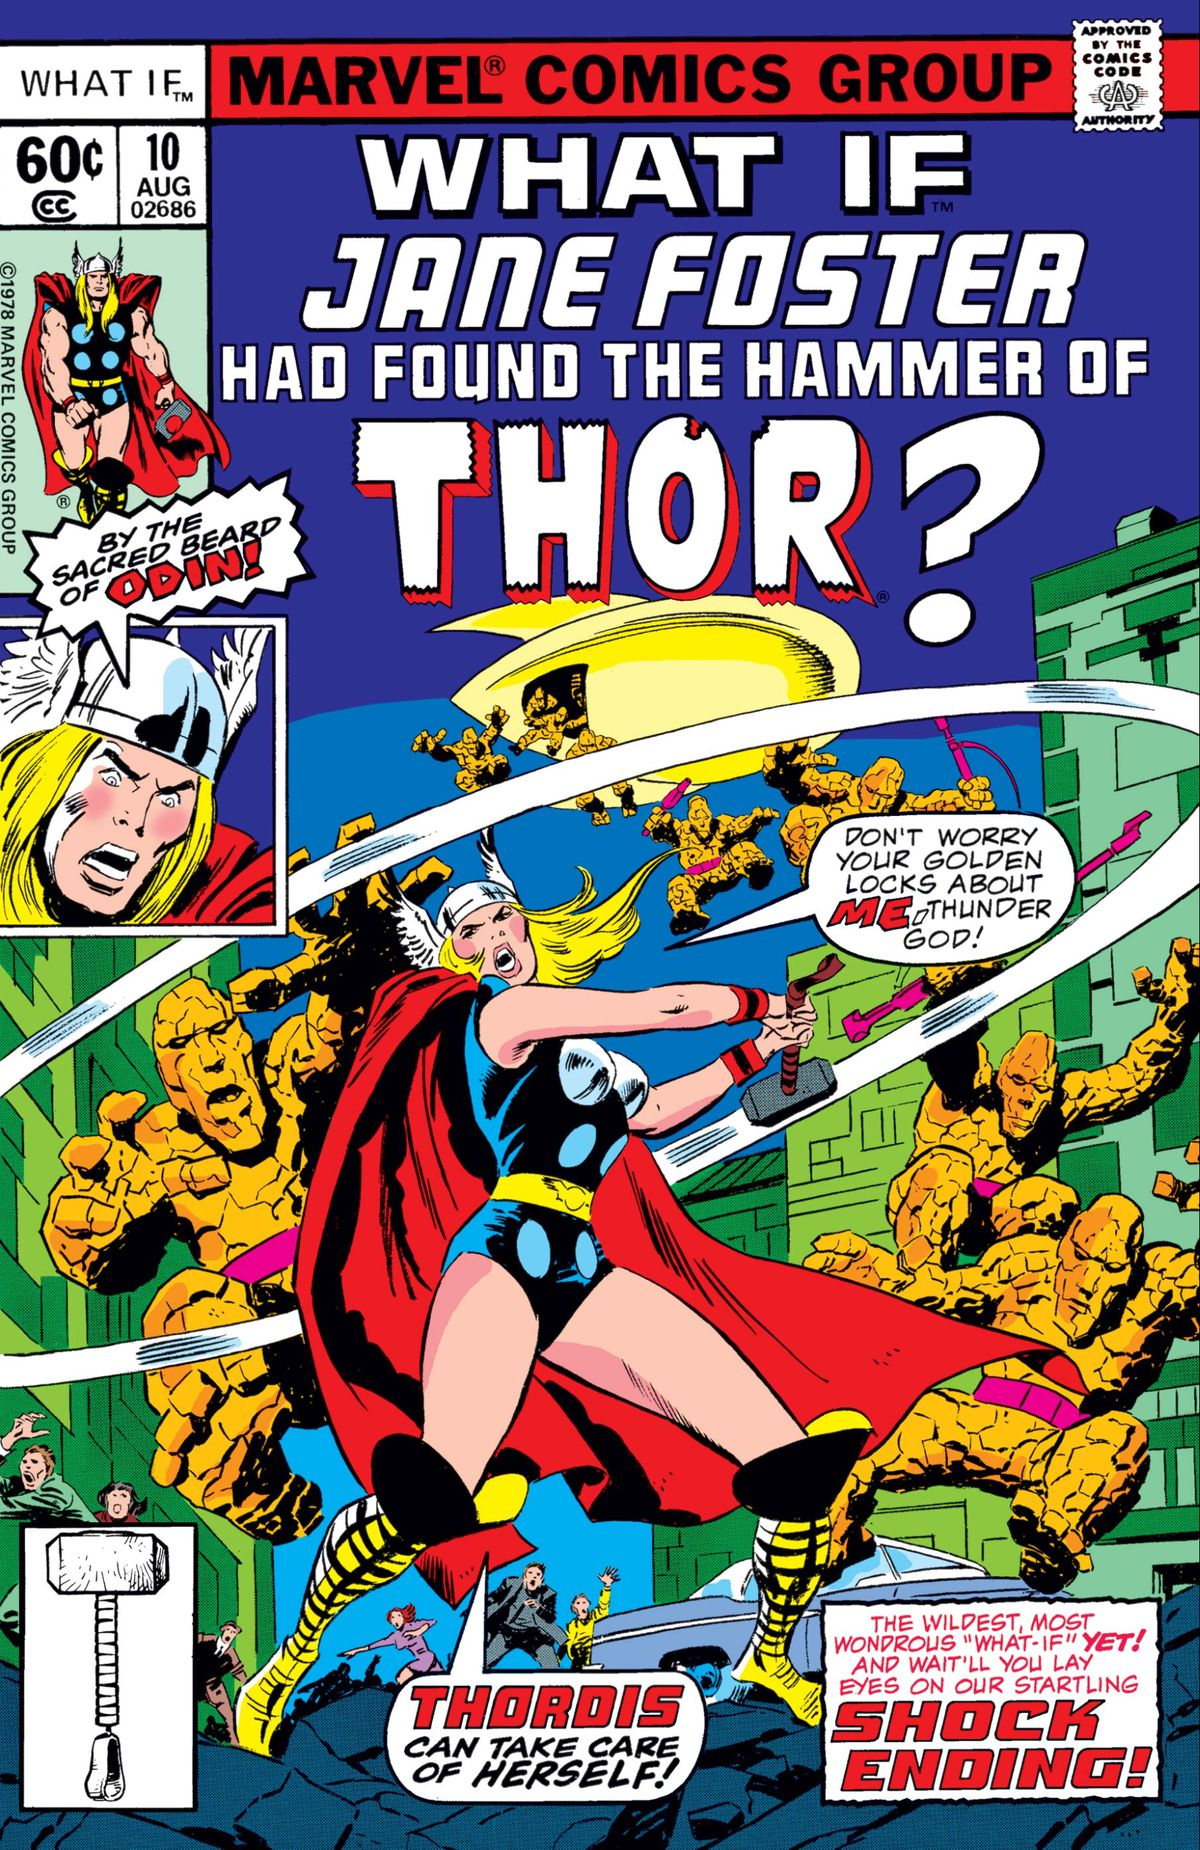 """Jane Foster as """"Thoris"""" on the cover of What If? #10, Marvel Comics (1978)."""